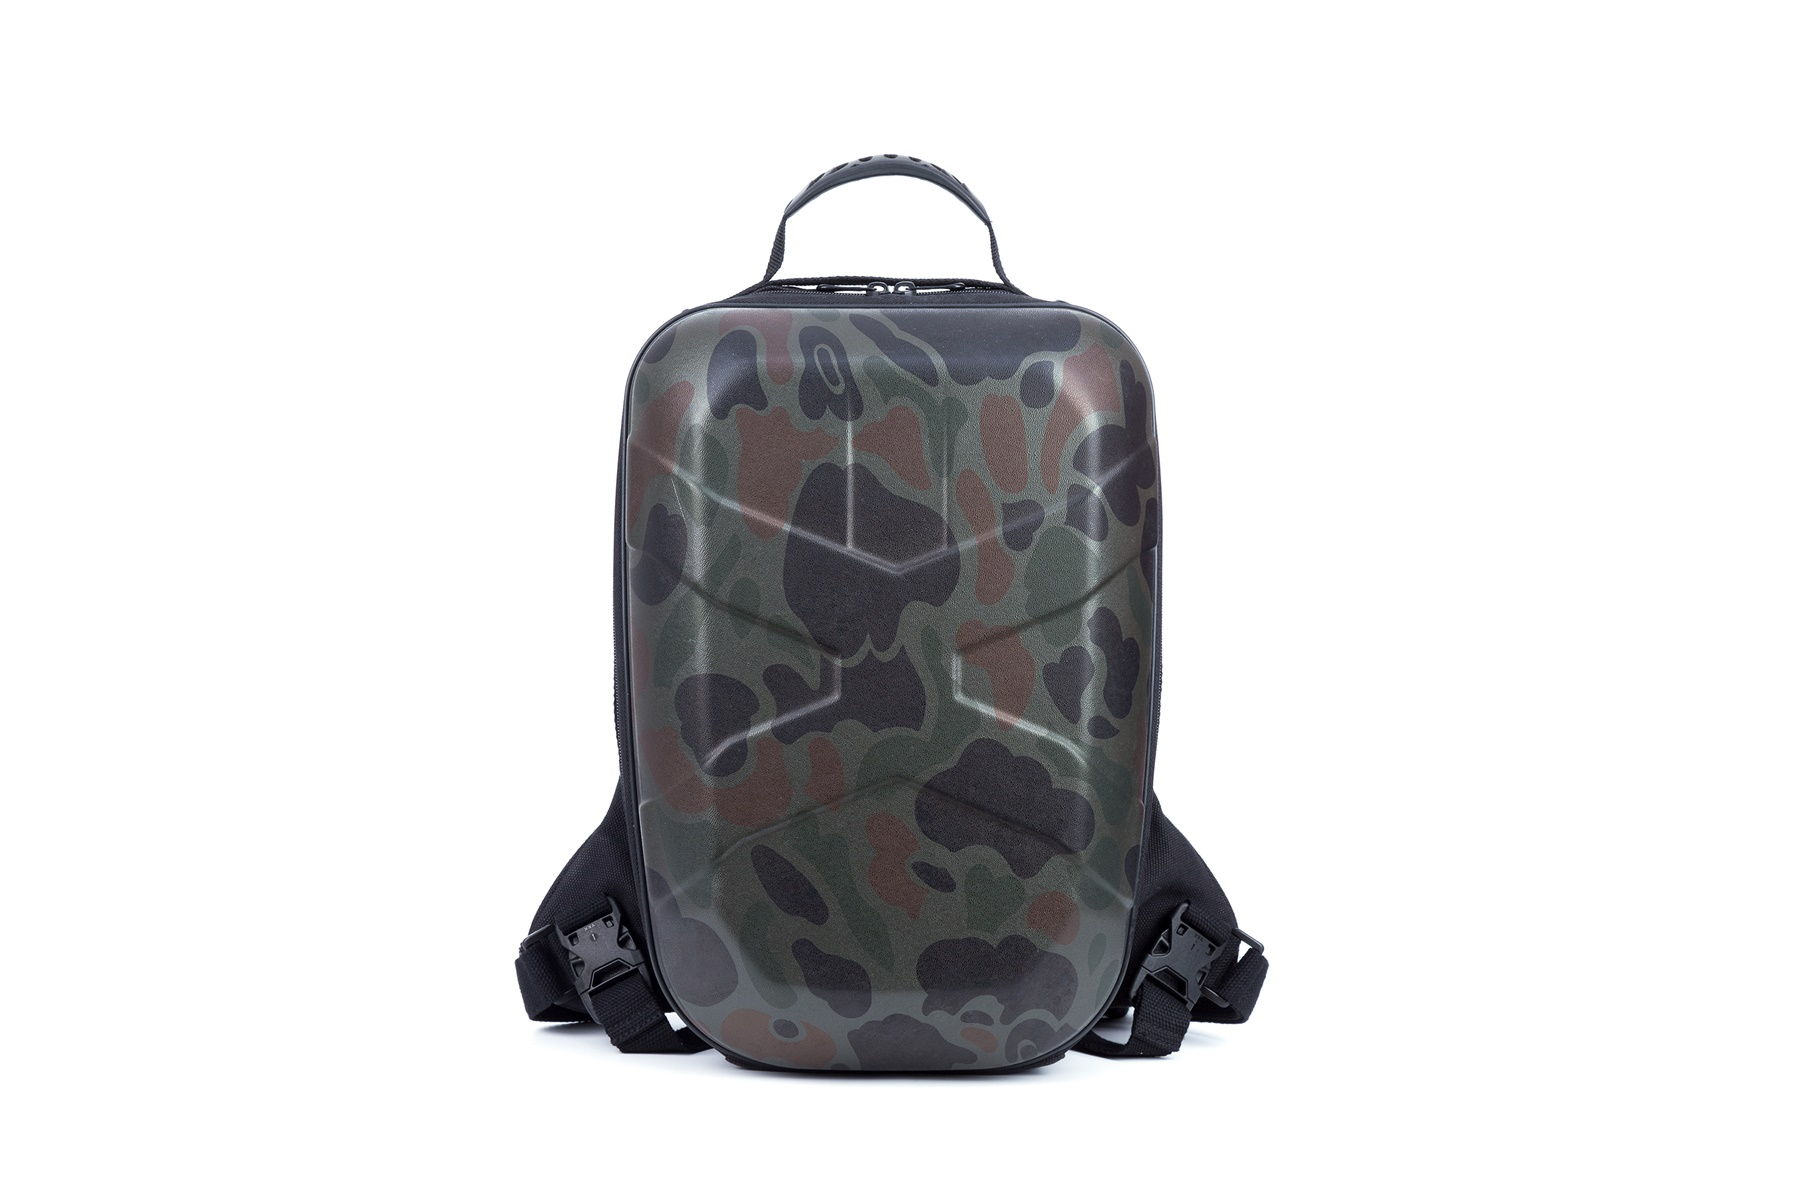 GF bags-Manufacturer Of Military Style Backpack And Bag Tactical - GF Bags-4